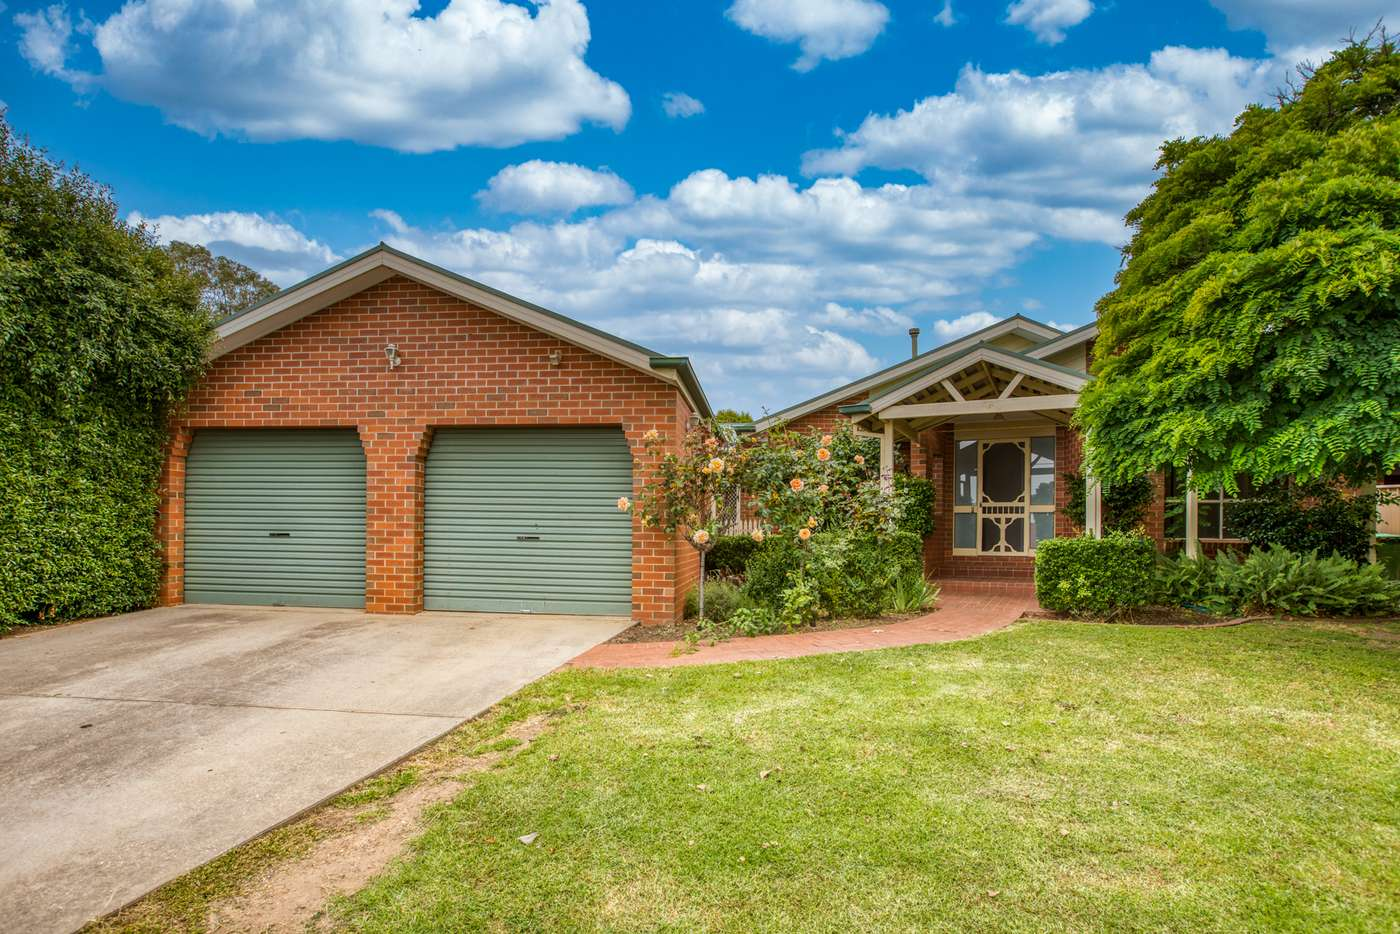 Main view of Homely house listing, 7 Mashie Way, Wodonga VIC 3690